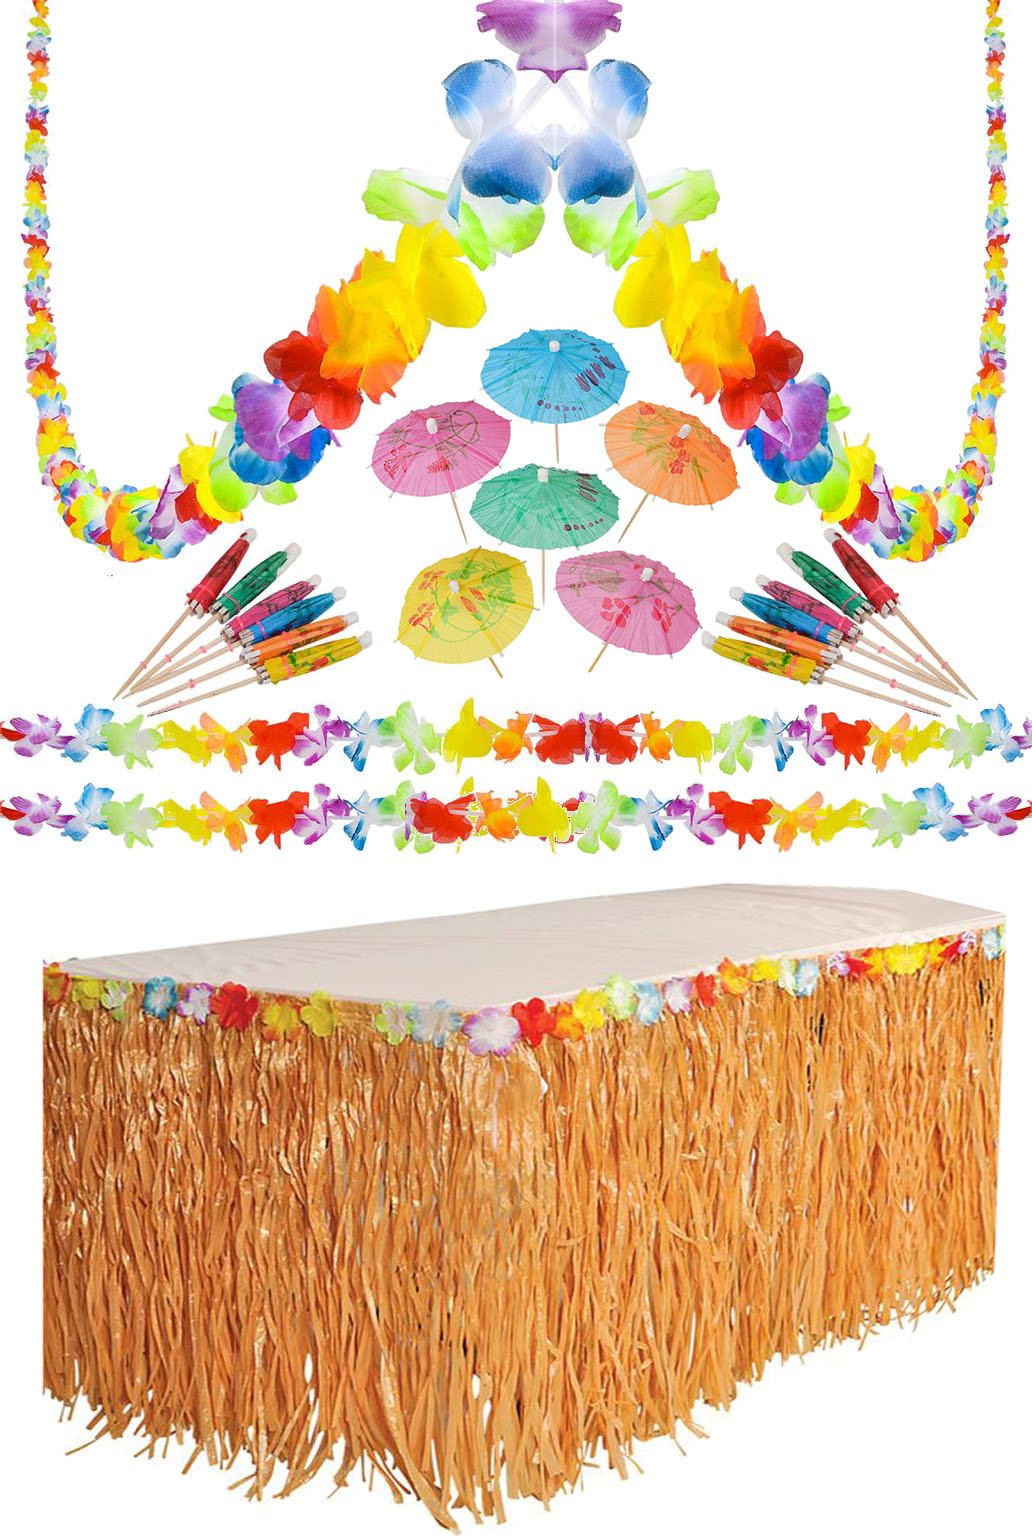 Luau Tropical Hawaiian Party Decoration Set - 36 Foot Lei Garland, 9 Foot Artifcal Grass Table Skirt, 144 Paper Cocktail Umbrellas By 4E's Novelty